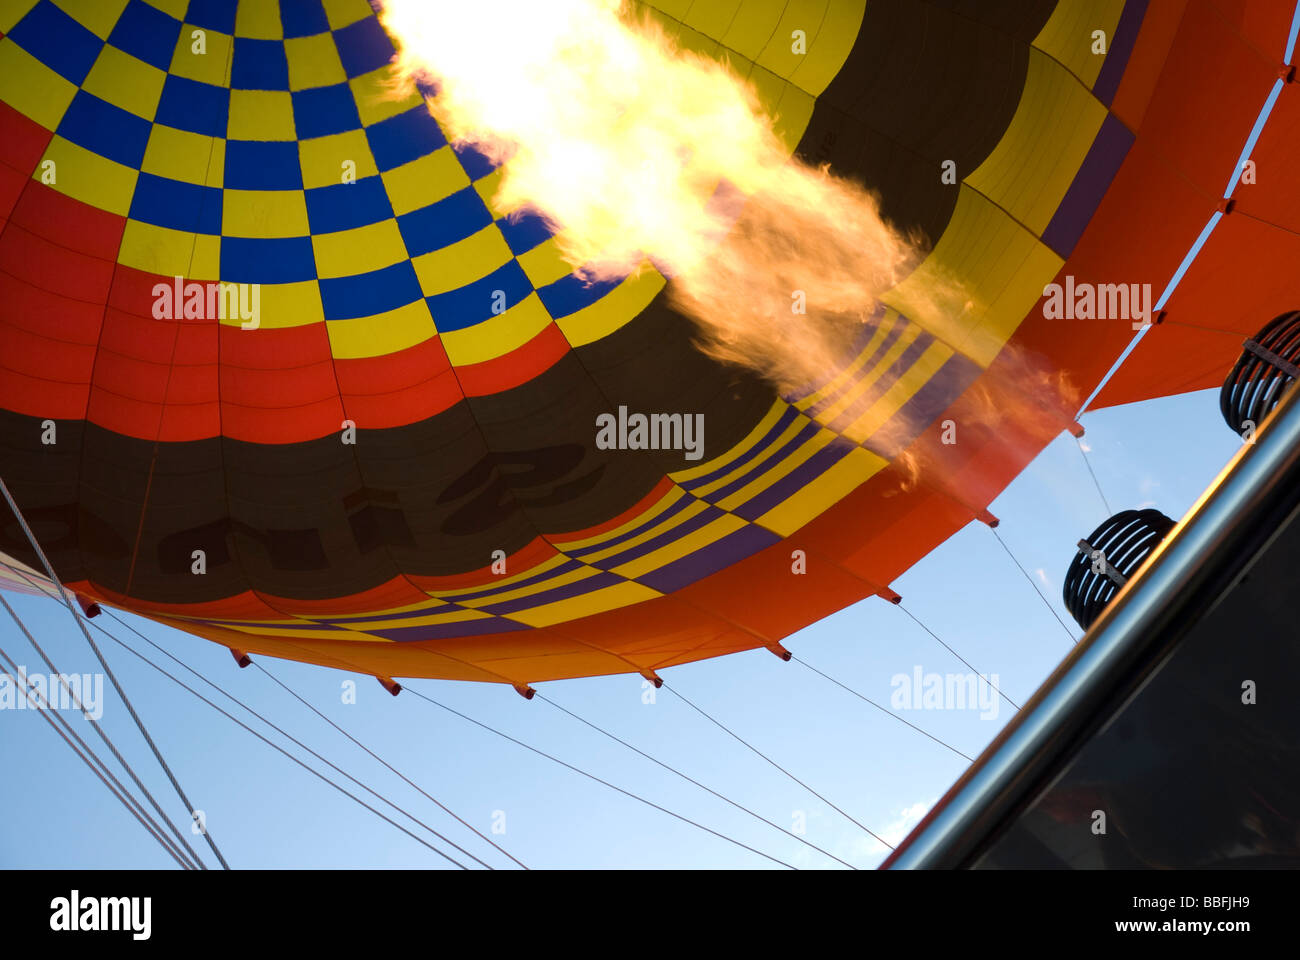 Flame in a hot air balloon - Stock Image